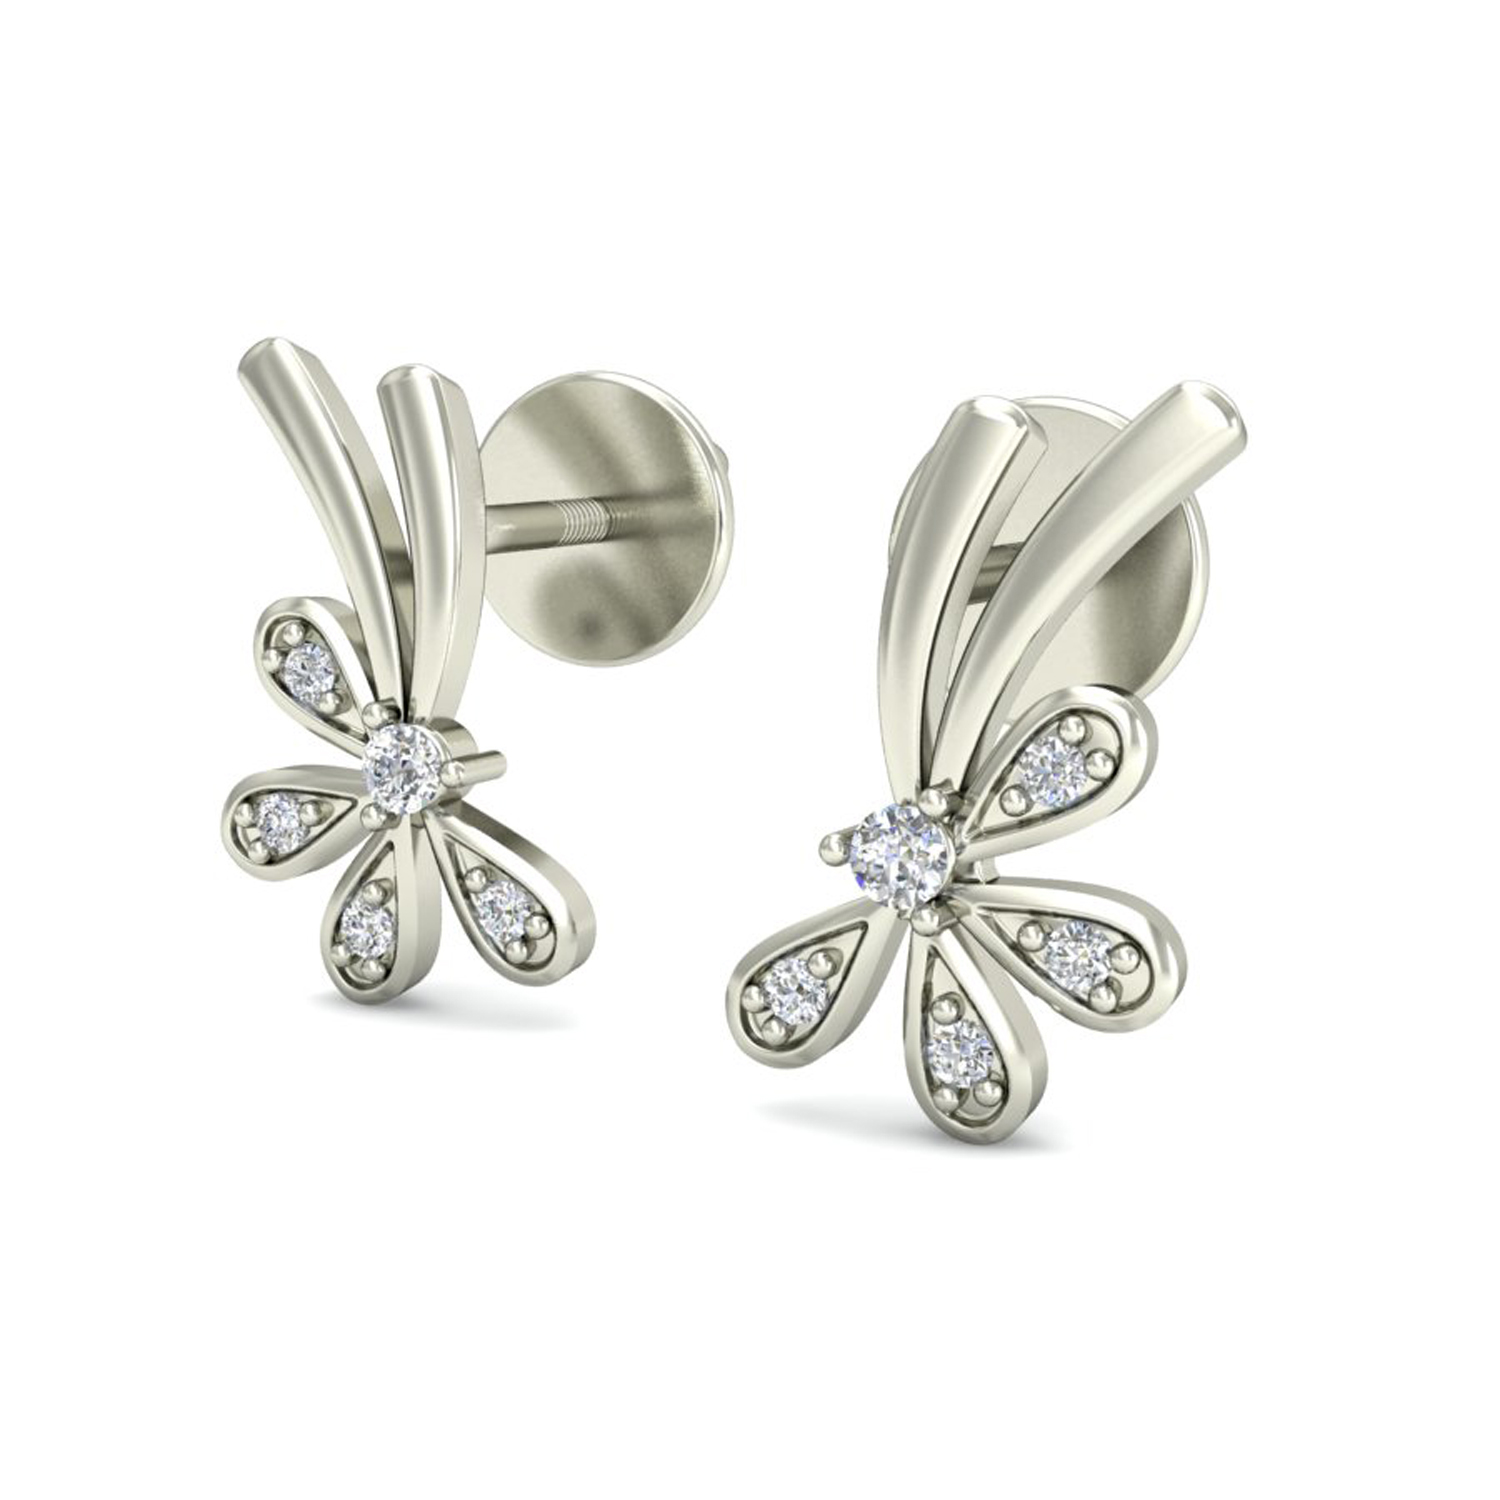 Diamond Earrings Studs 0 07 Ct Natural Certified Solid Gold Gift For Her